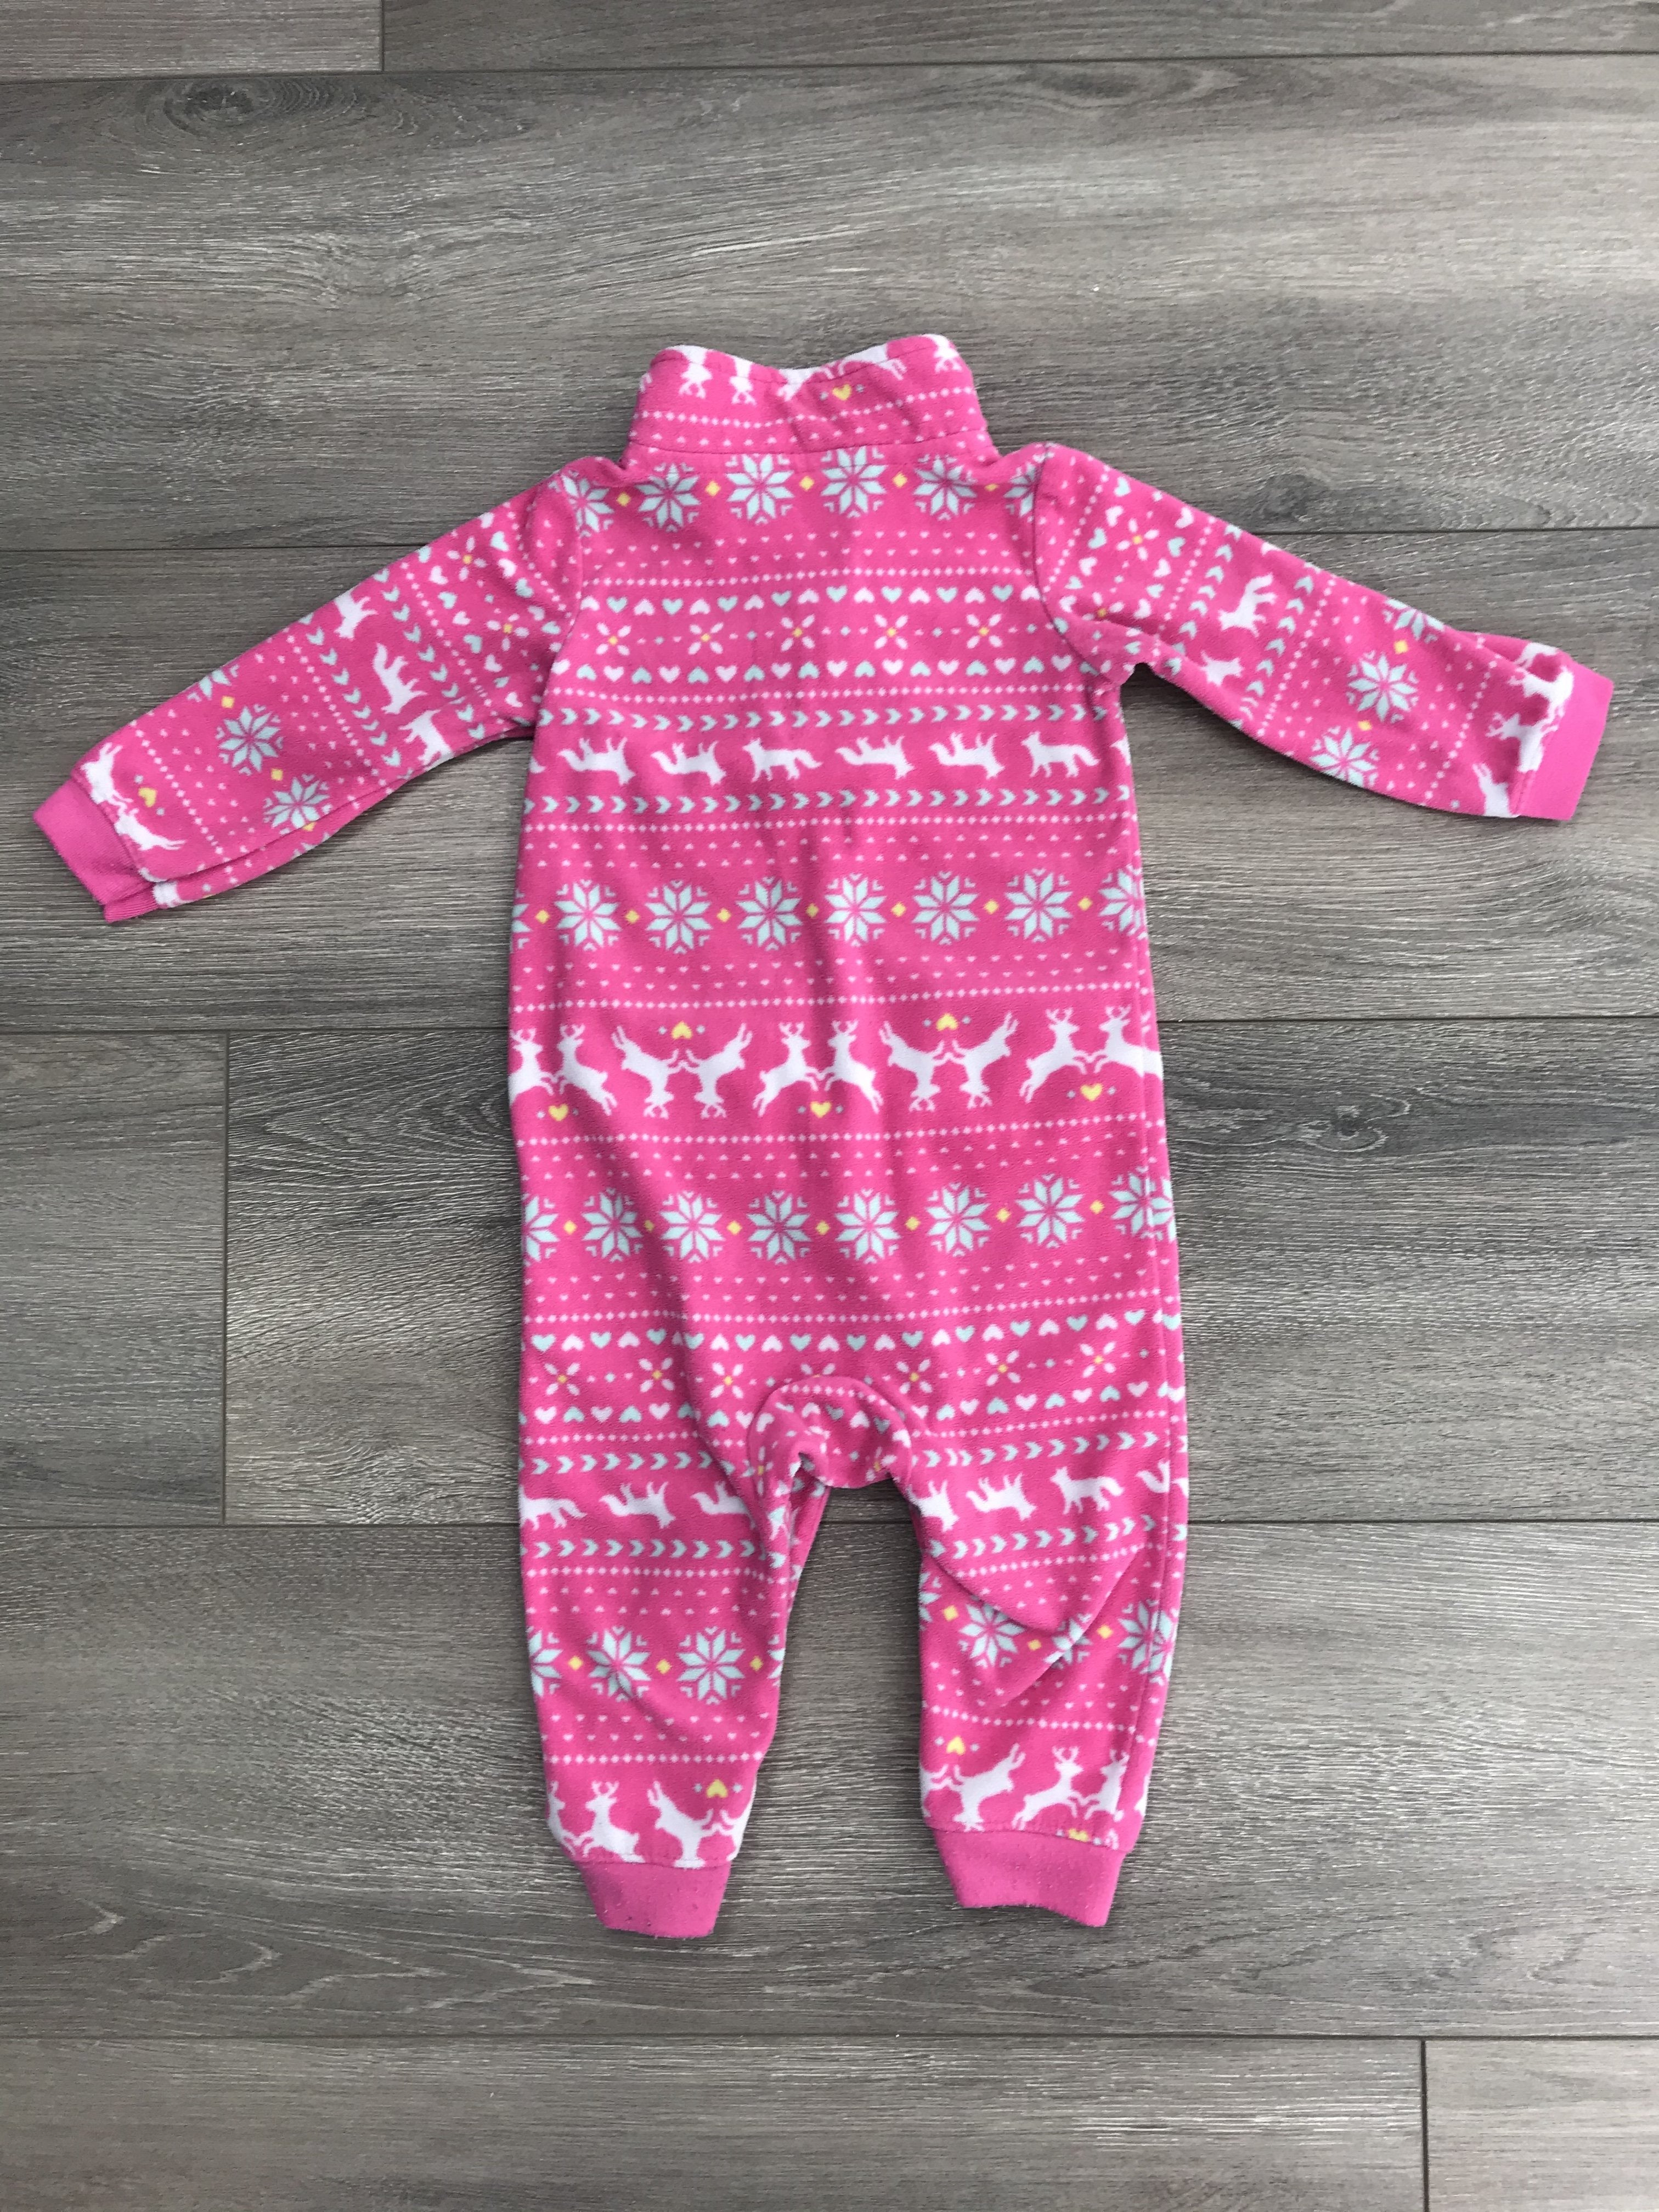 Carters 12 Months Warm One-piece, Warm and soft one piece with two cute pockets in the front that the baby probably won't use., Pink, 100% Polyester, 12 months baby's one-piece, baby's clothes, 12 months baby clothes, baby girl's clothes